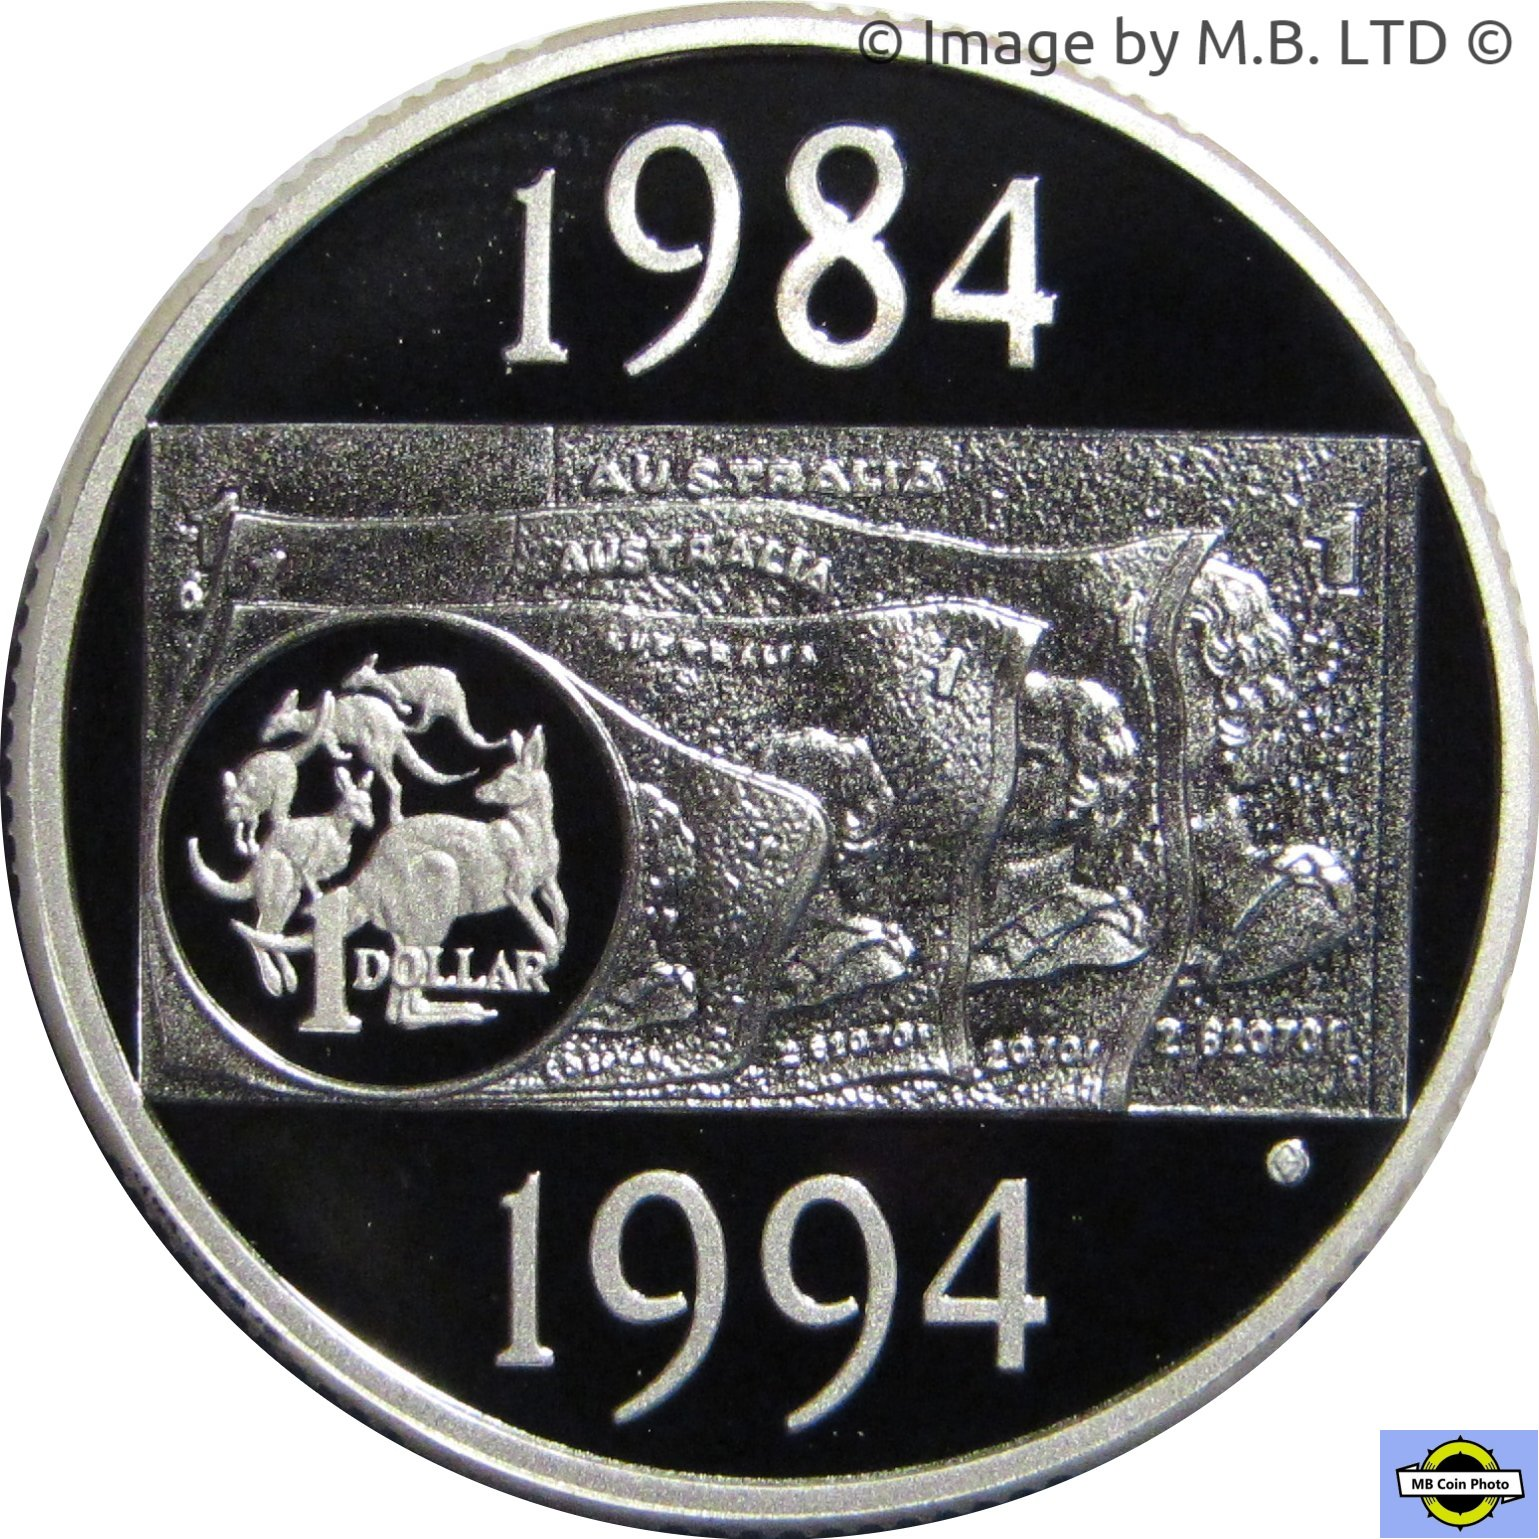 2004 SILVER $1 Proof Wombat Australia Coin out of Masterpieces Set